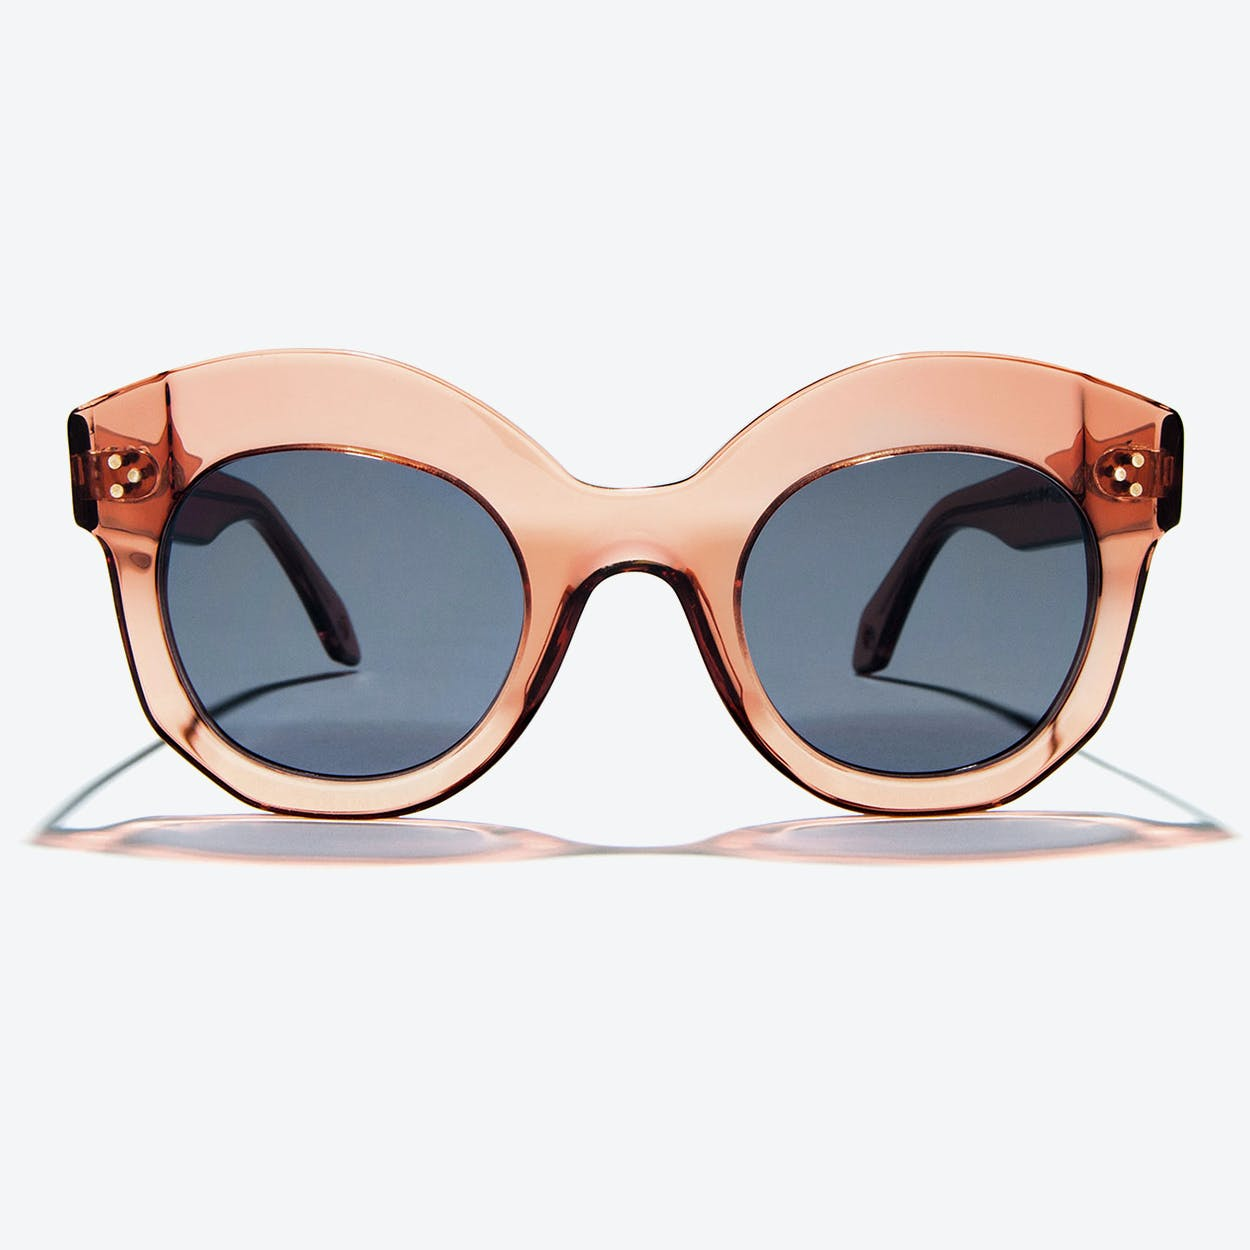 Siren Sunglasses in Champagne